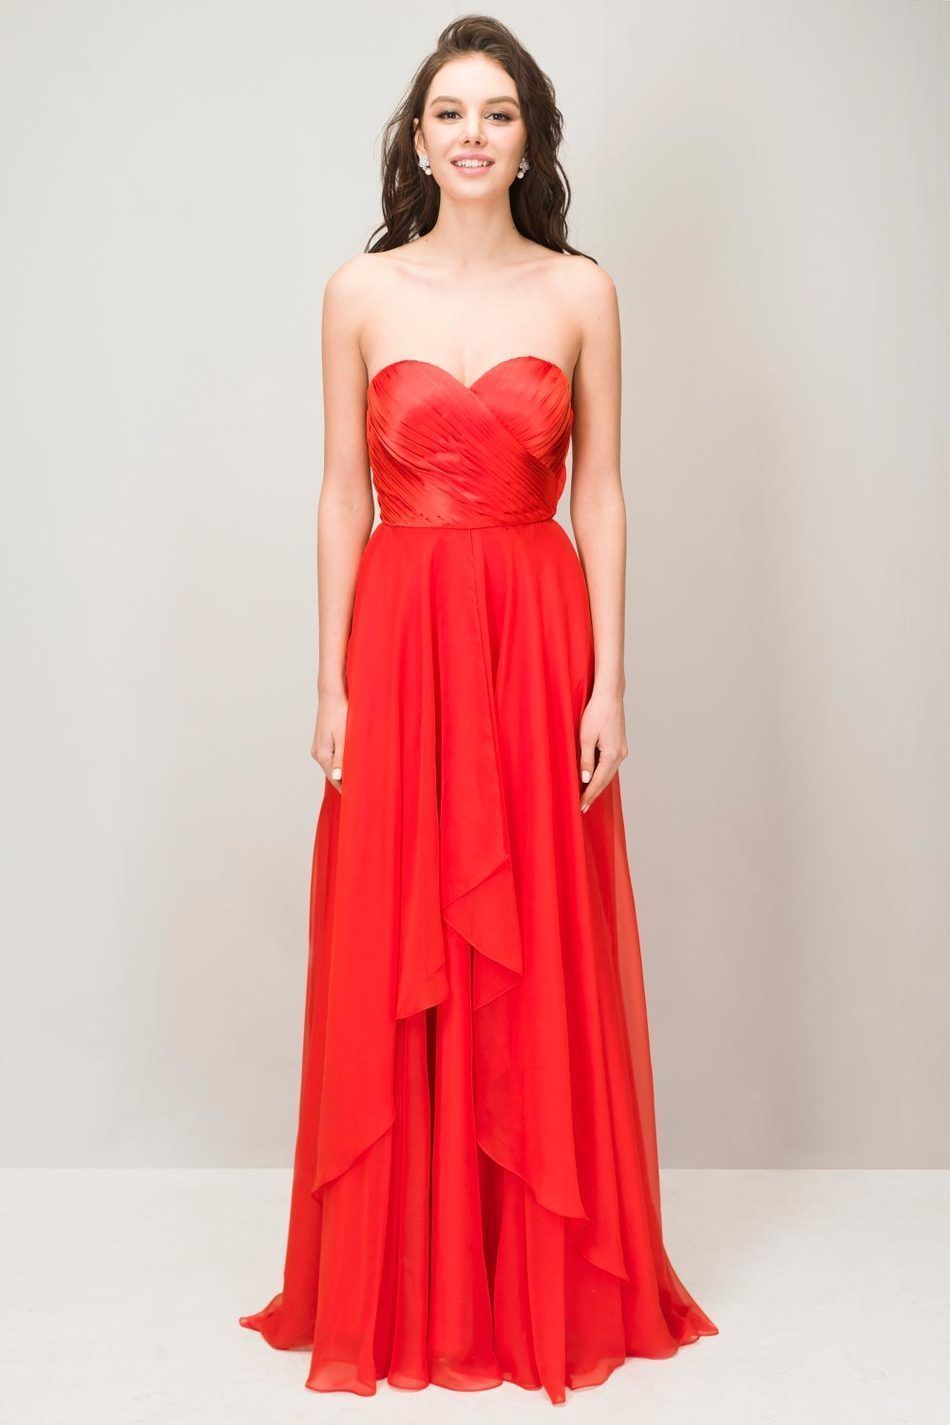 Prom dresses elegant red long simple sweetheart chiffon formal